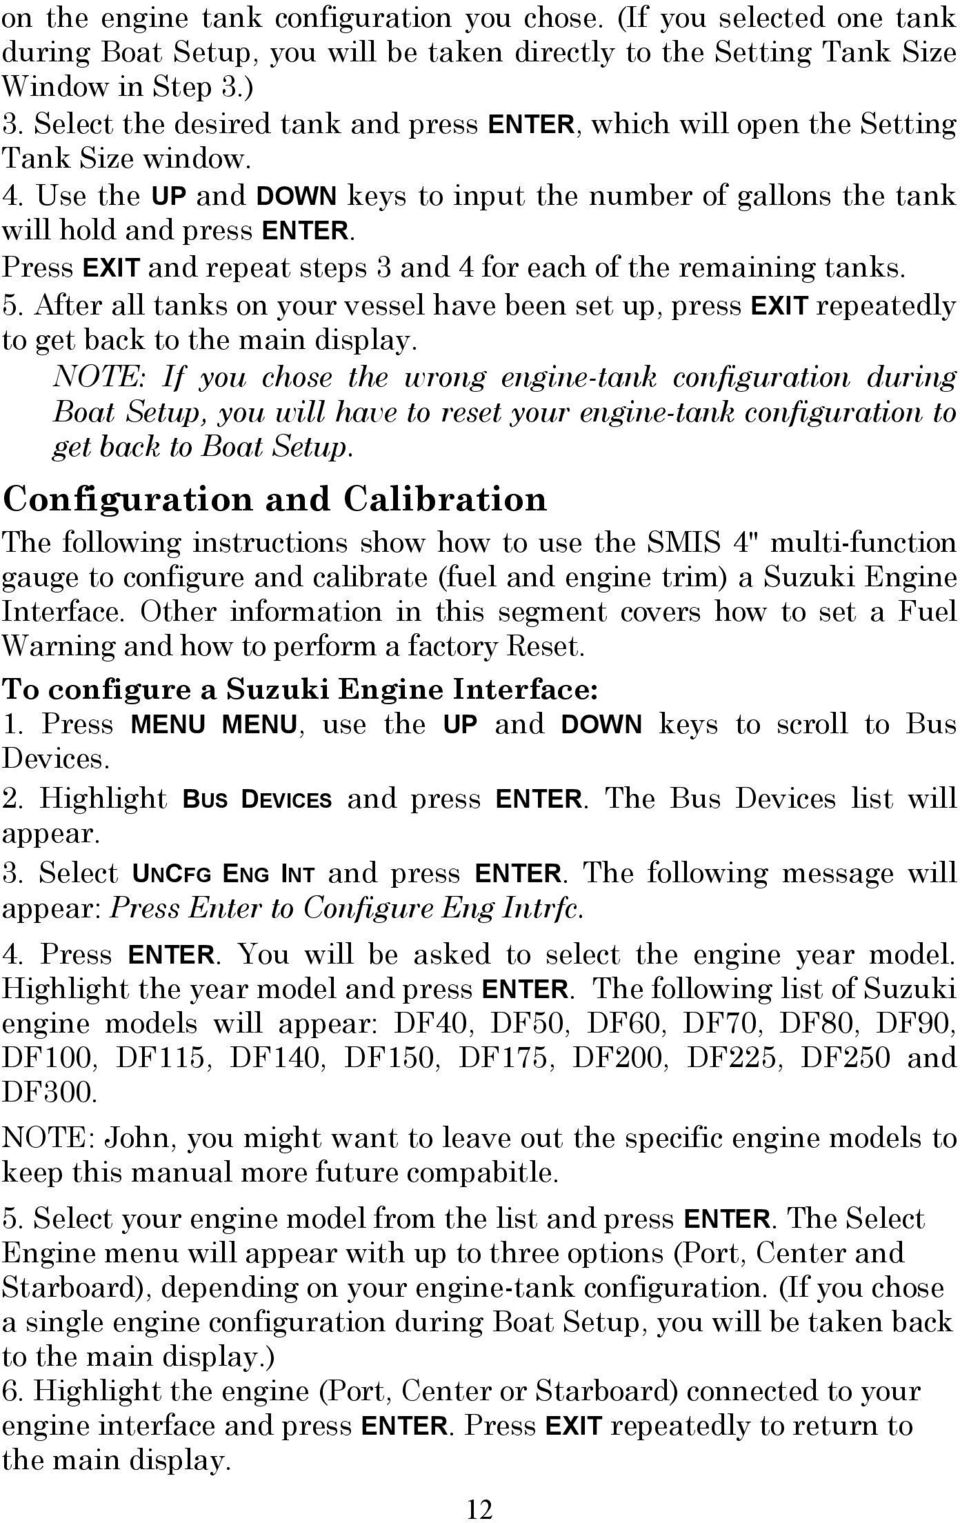 Suzuki Modular Instrument System Smis 4 Display Pdf Df90 Wiring Diagram Press Exit And Repeat Steps 3 For Each Of The Remaining Tanks 5